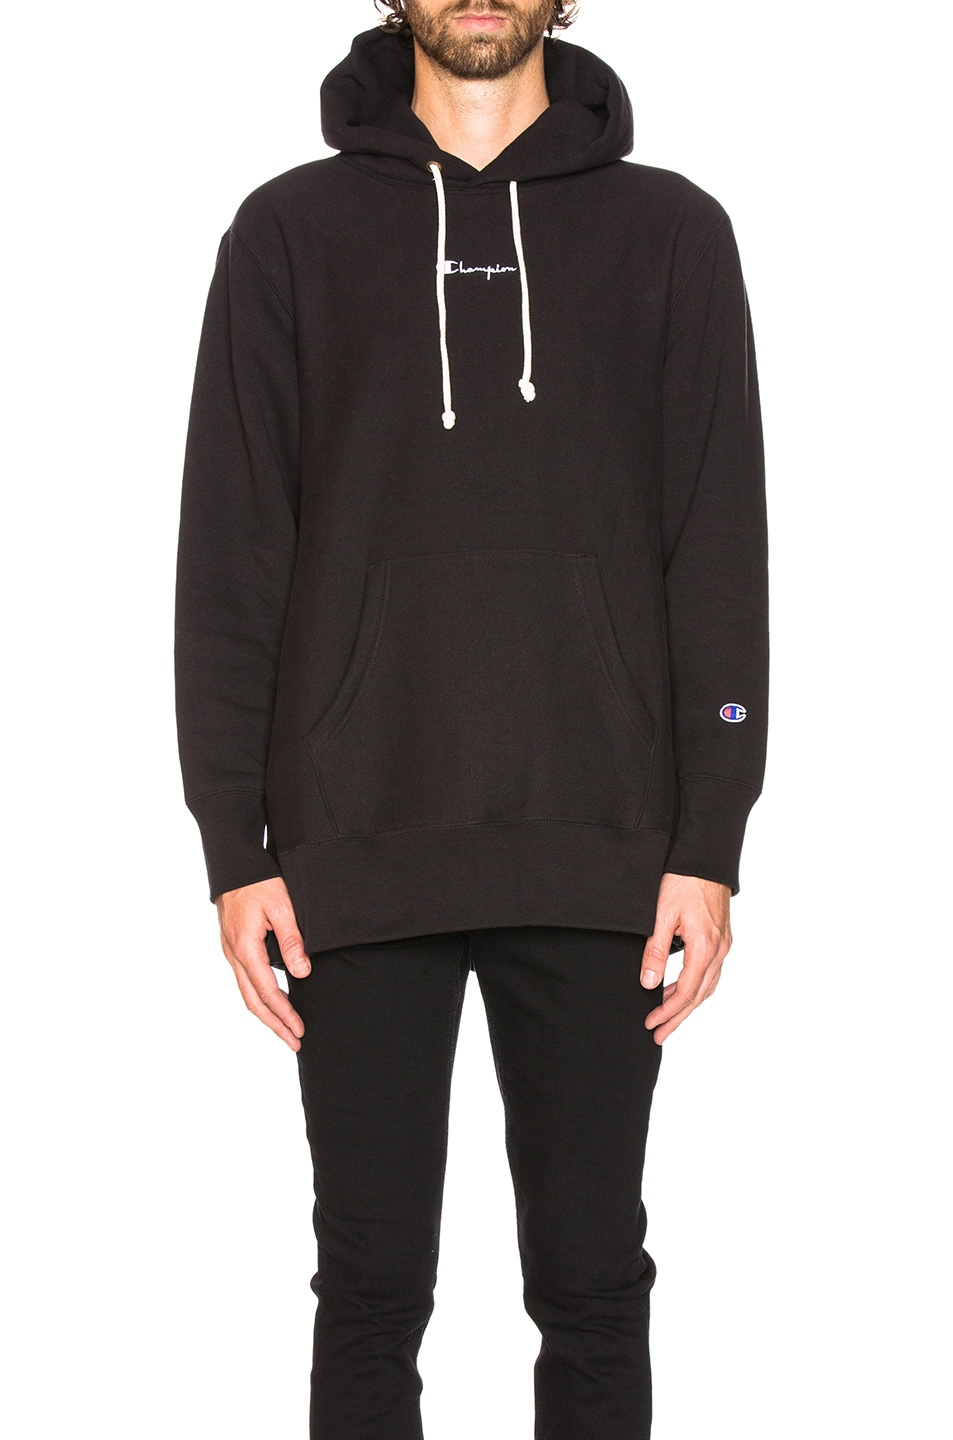 Image 1 of Champion Reverse Weave Oversized Hooded Sweatshirt in Black